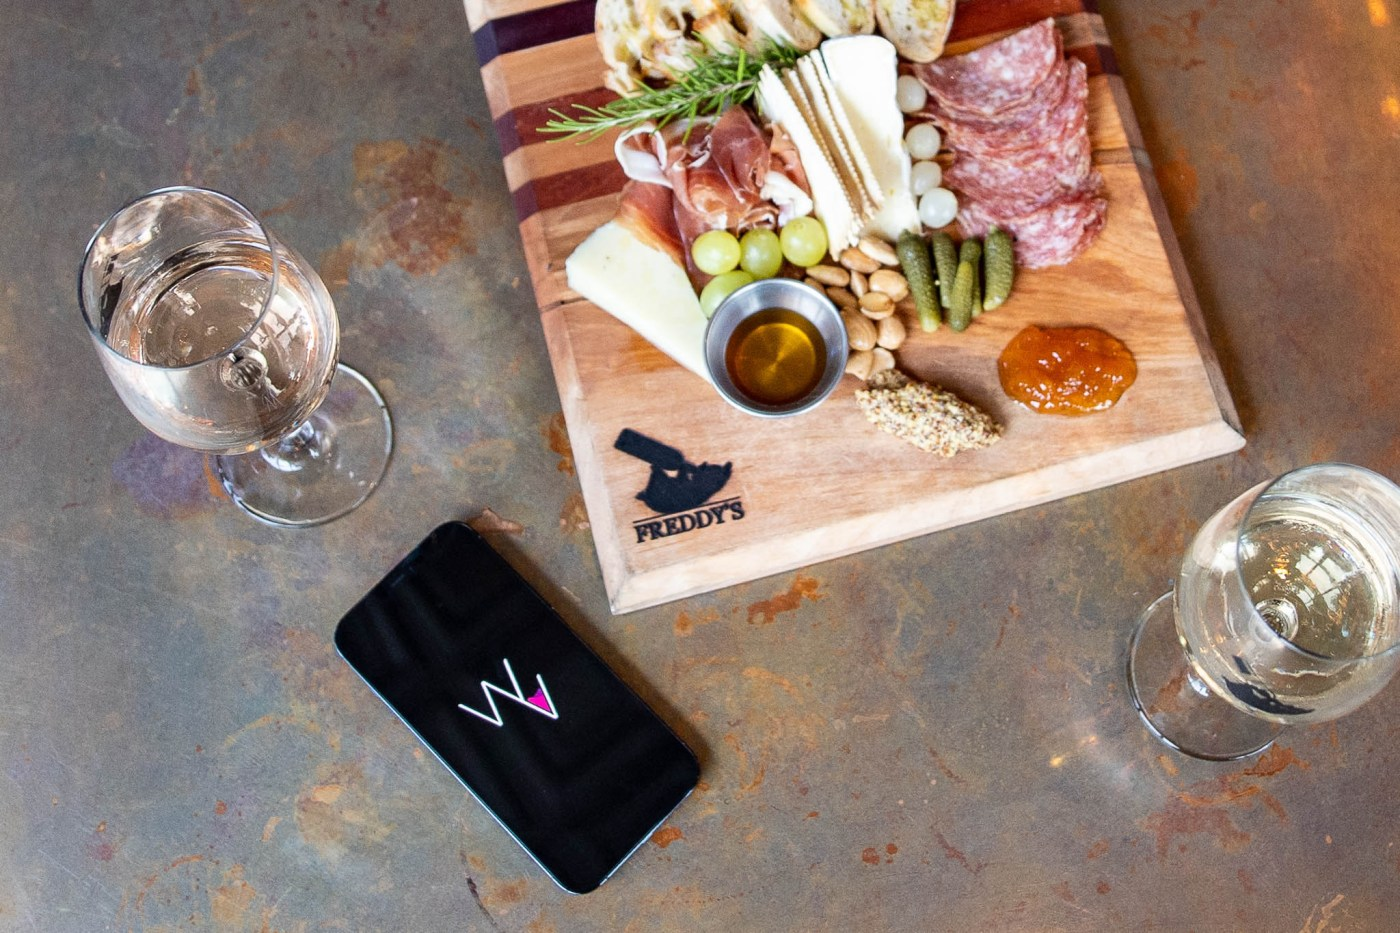 wineview cheese board